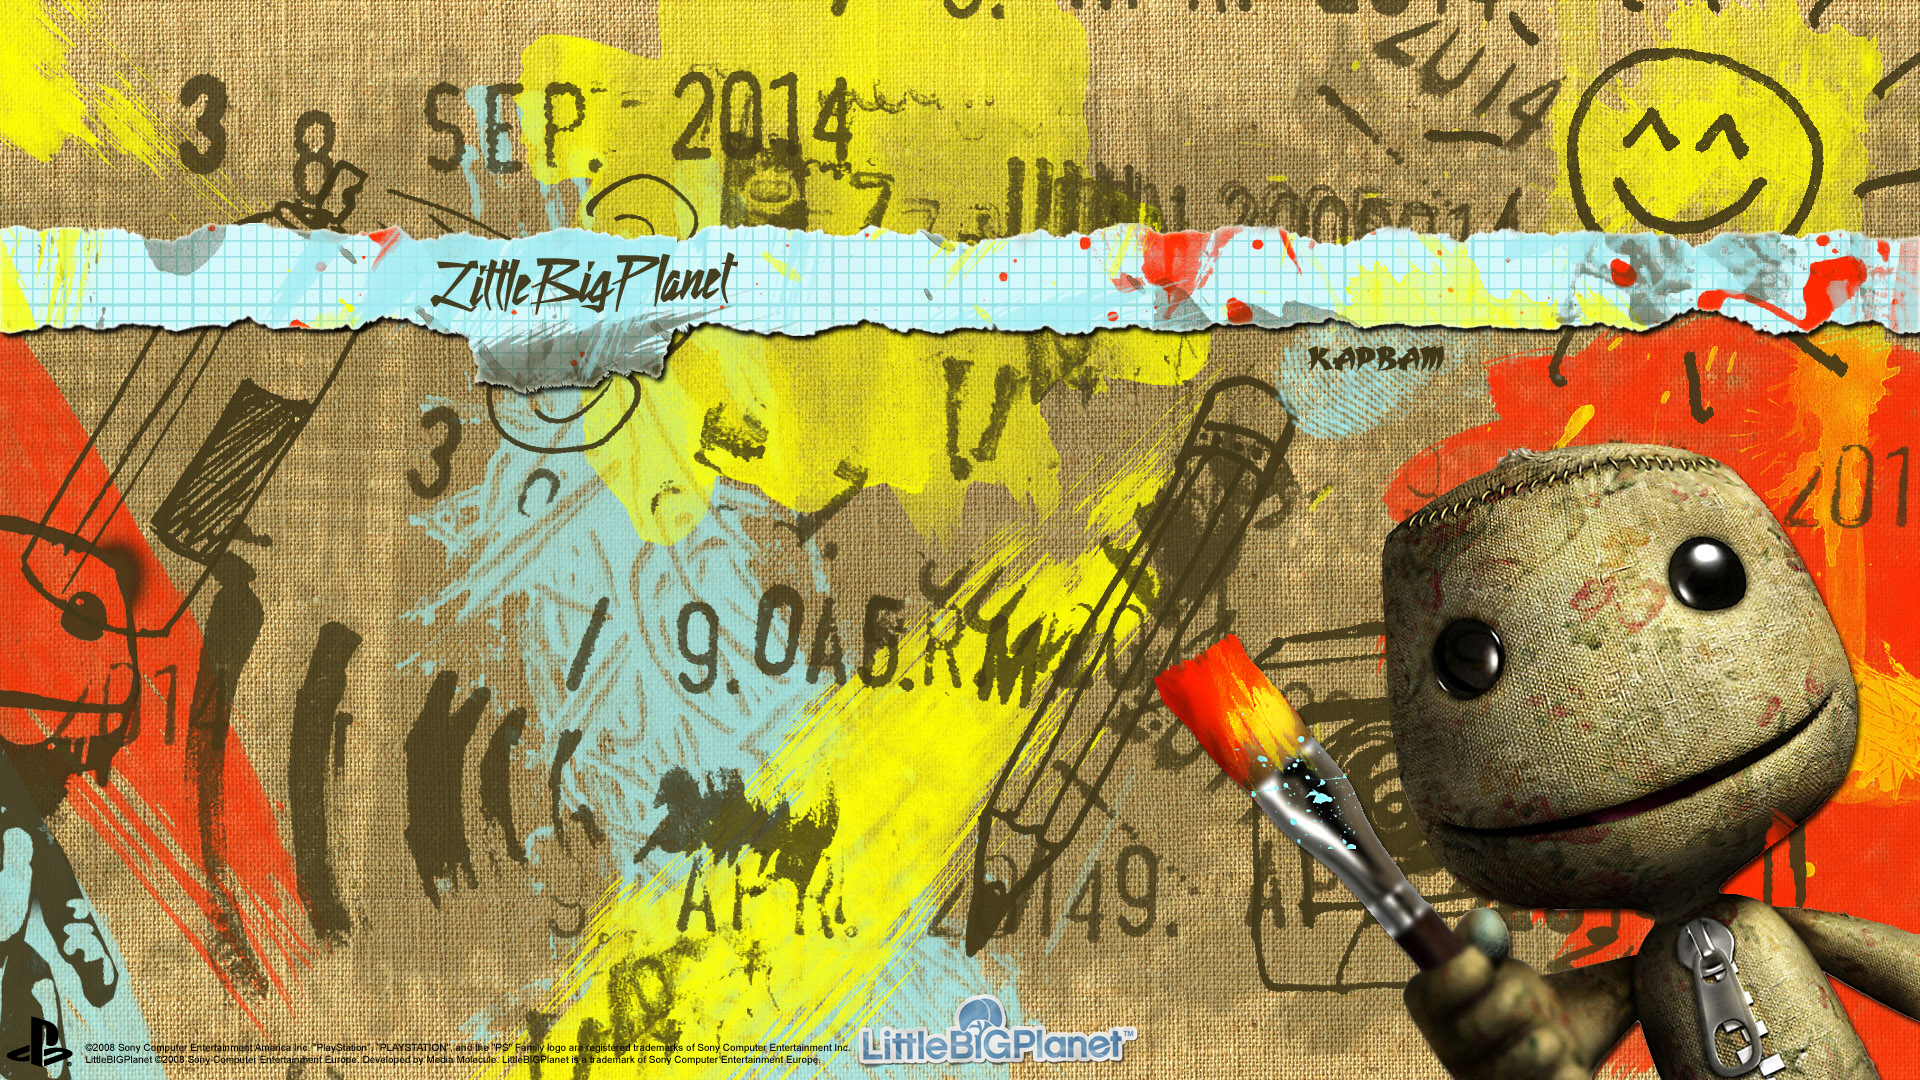 Little Big Planet Wallpaper: LittleBigPlanet Wallpaper